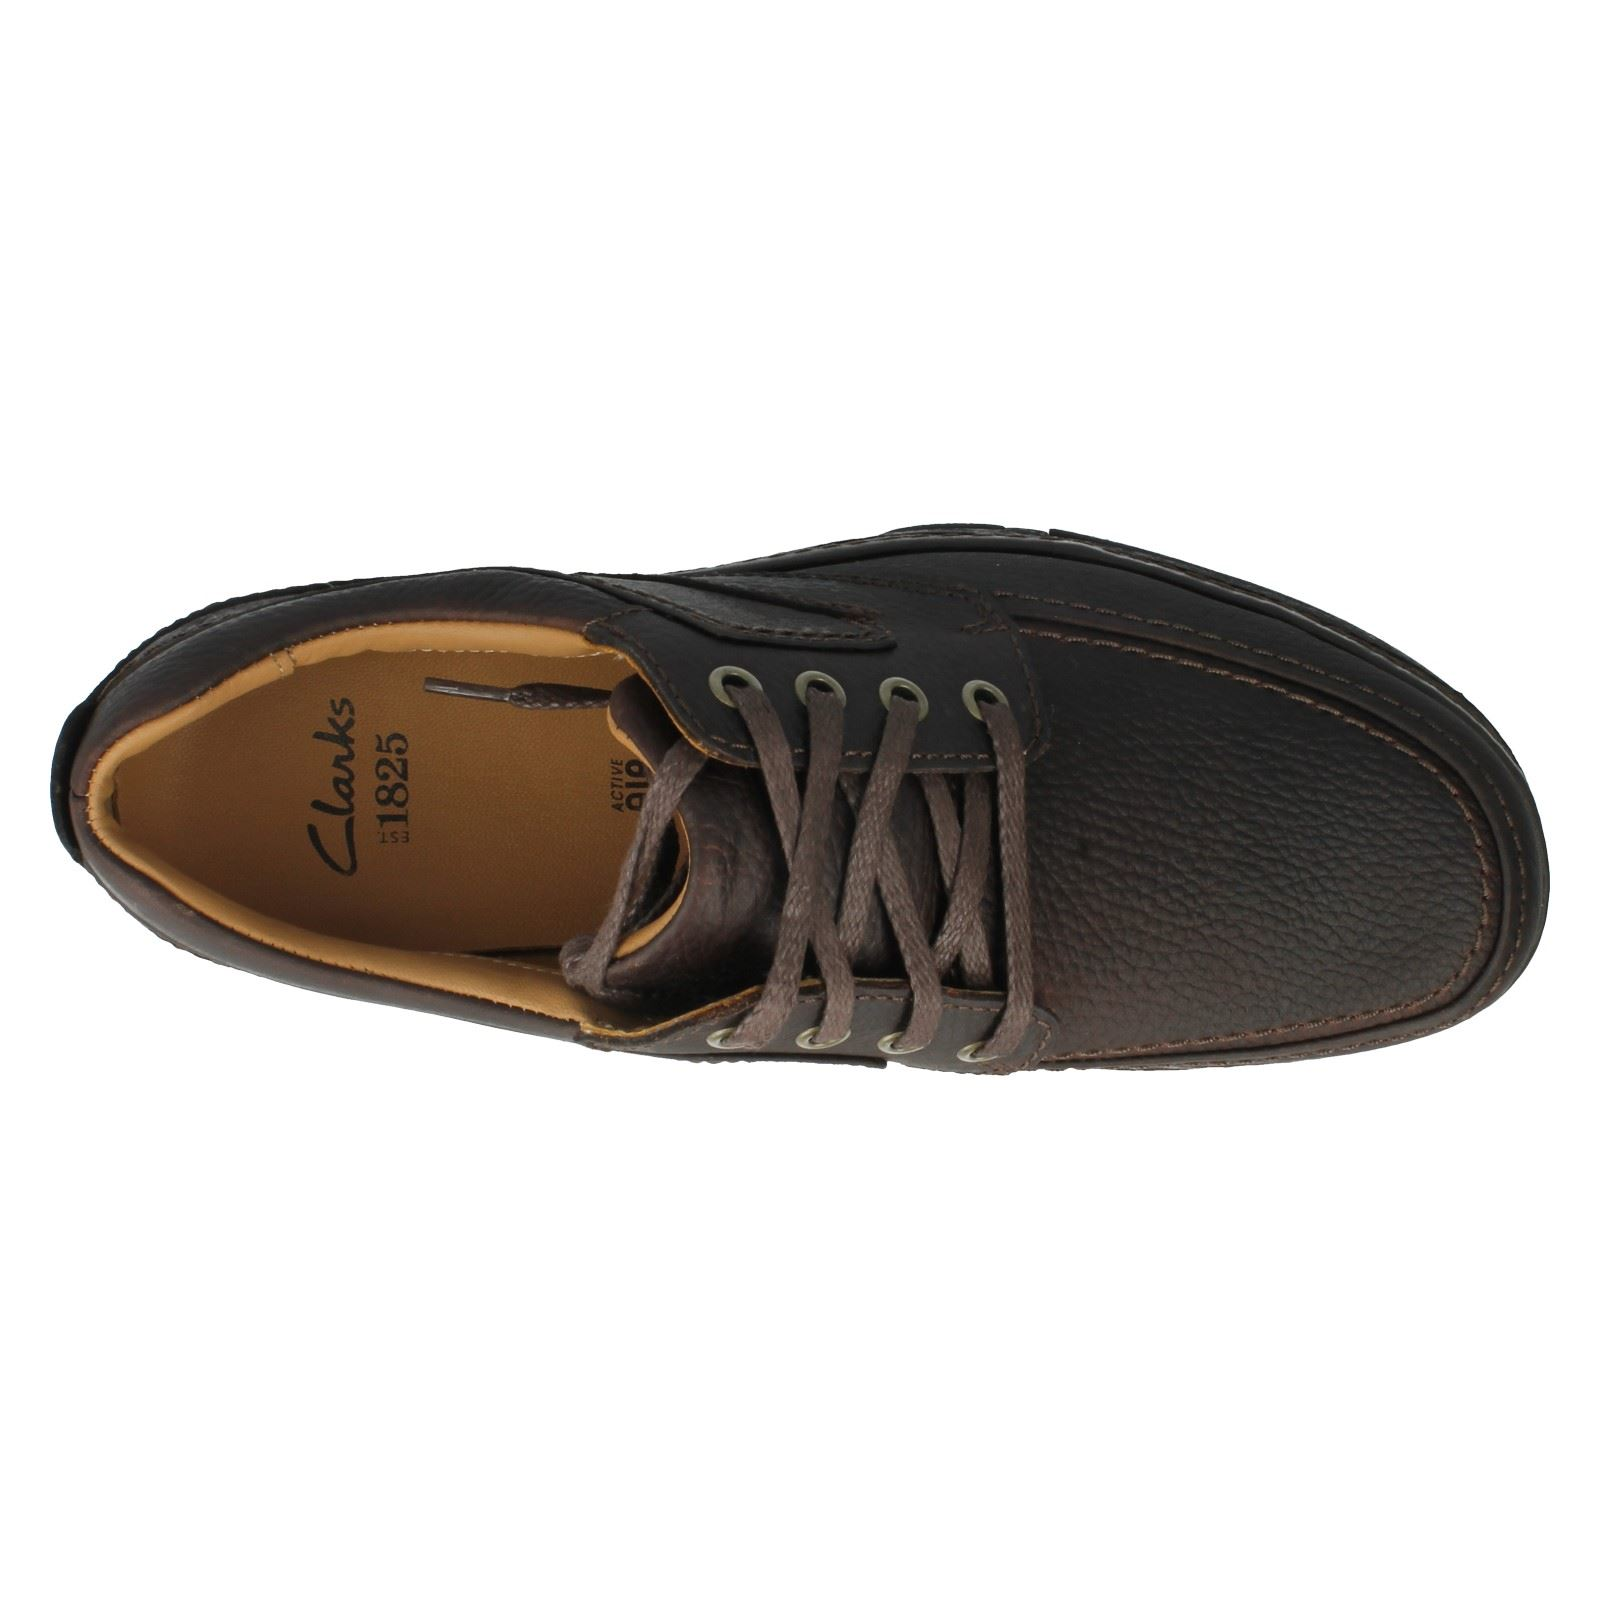 Men's Clarks Formal Lace Up Star Shoes The Style - Star Up Stride 301469